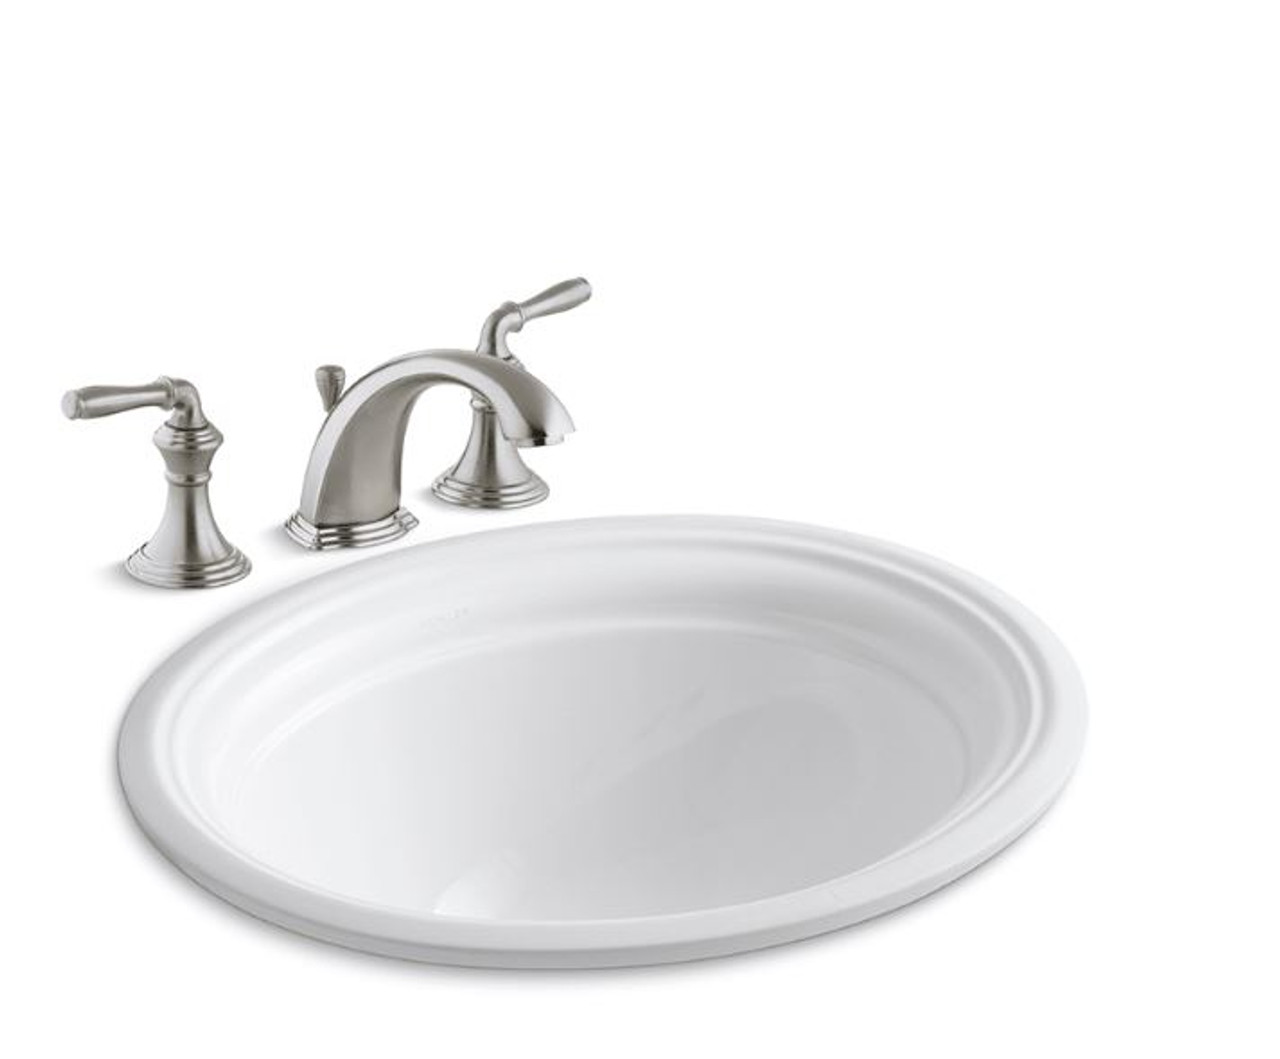 kohler devonshire 16 7 8 undermount bathroom sink with overflow and devonshire widespread bathroom faucet with pop up drain assembly